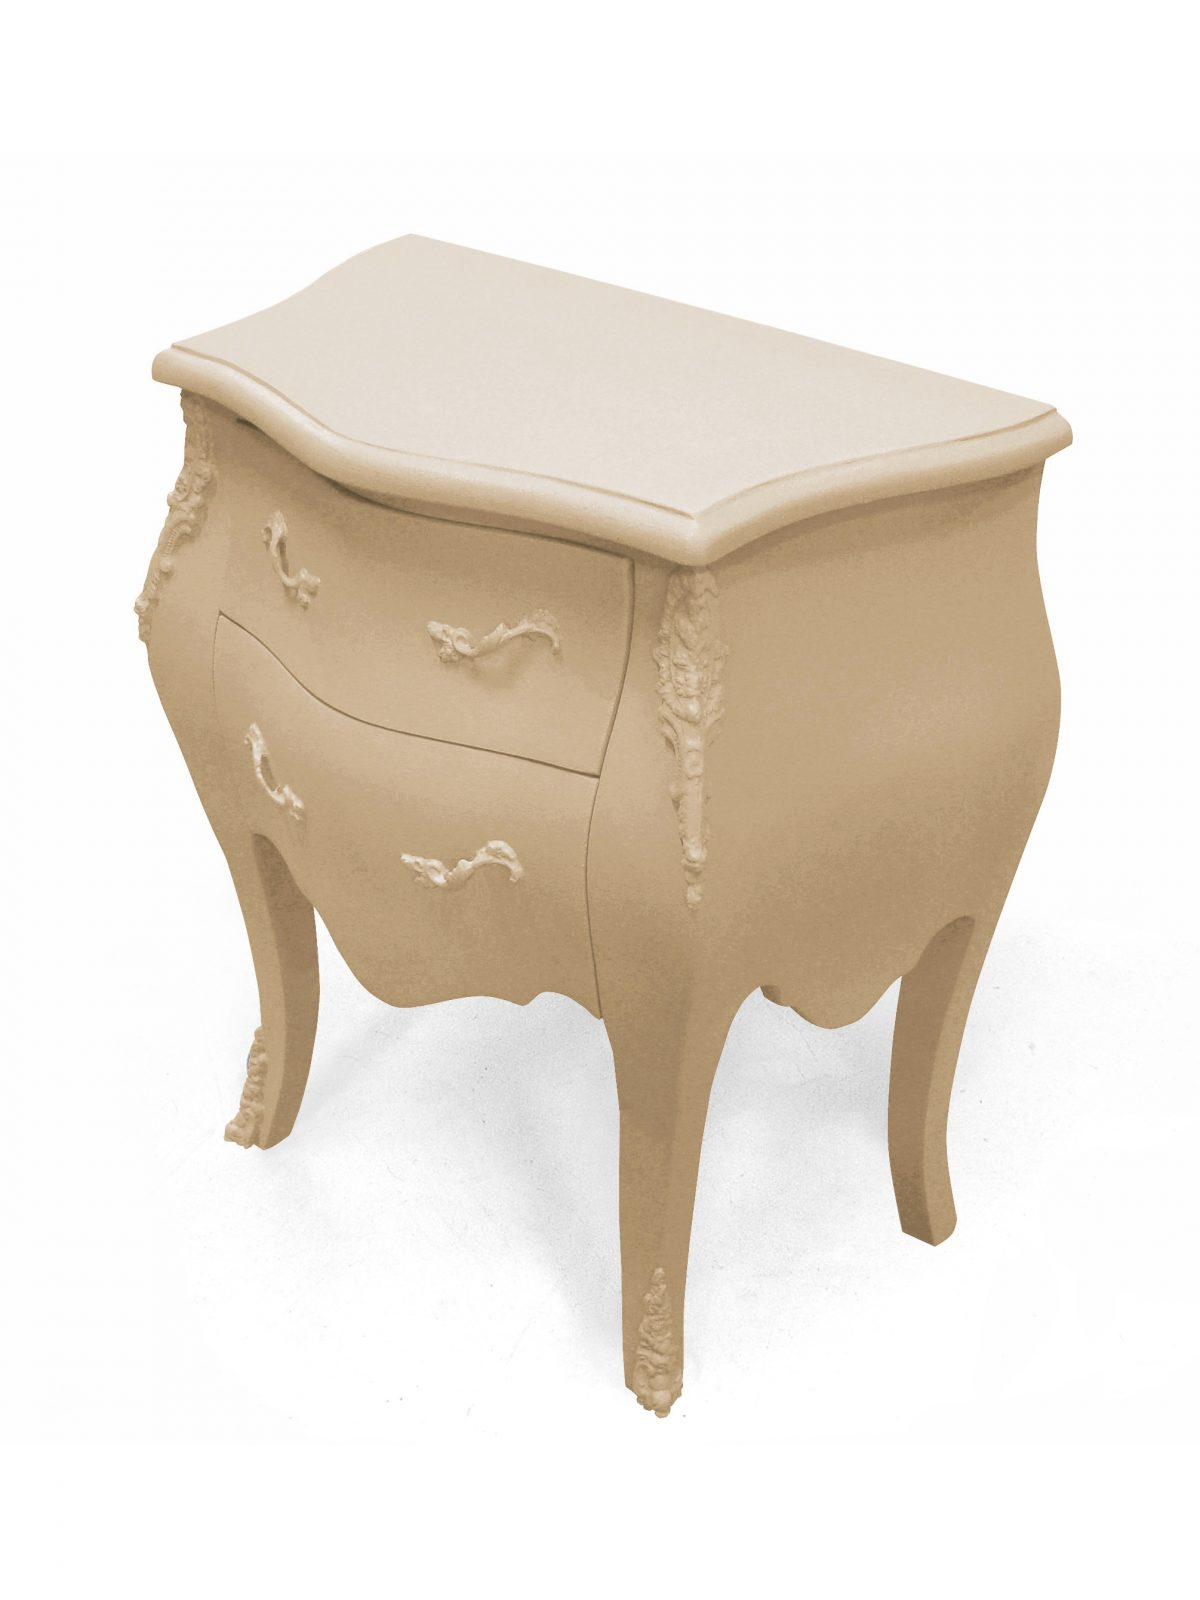 Dressoir Plastic Fantastic JSPR Savannah Design Webshop